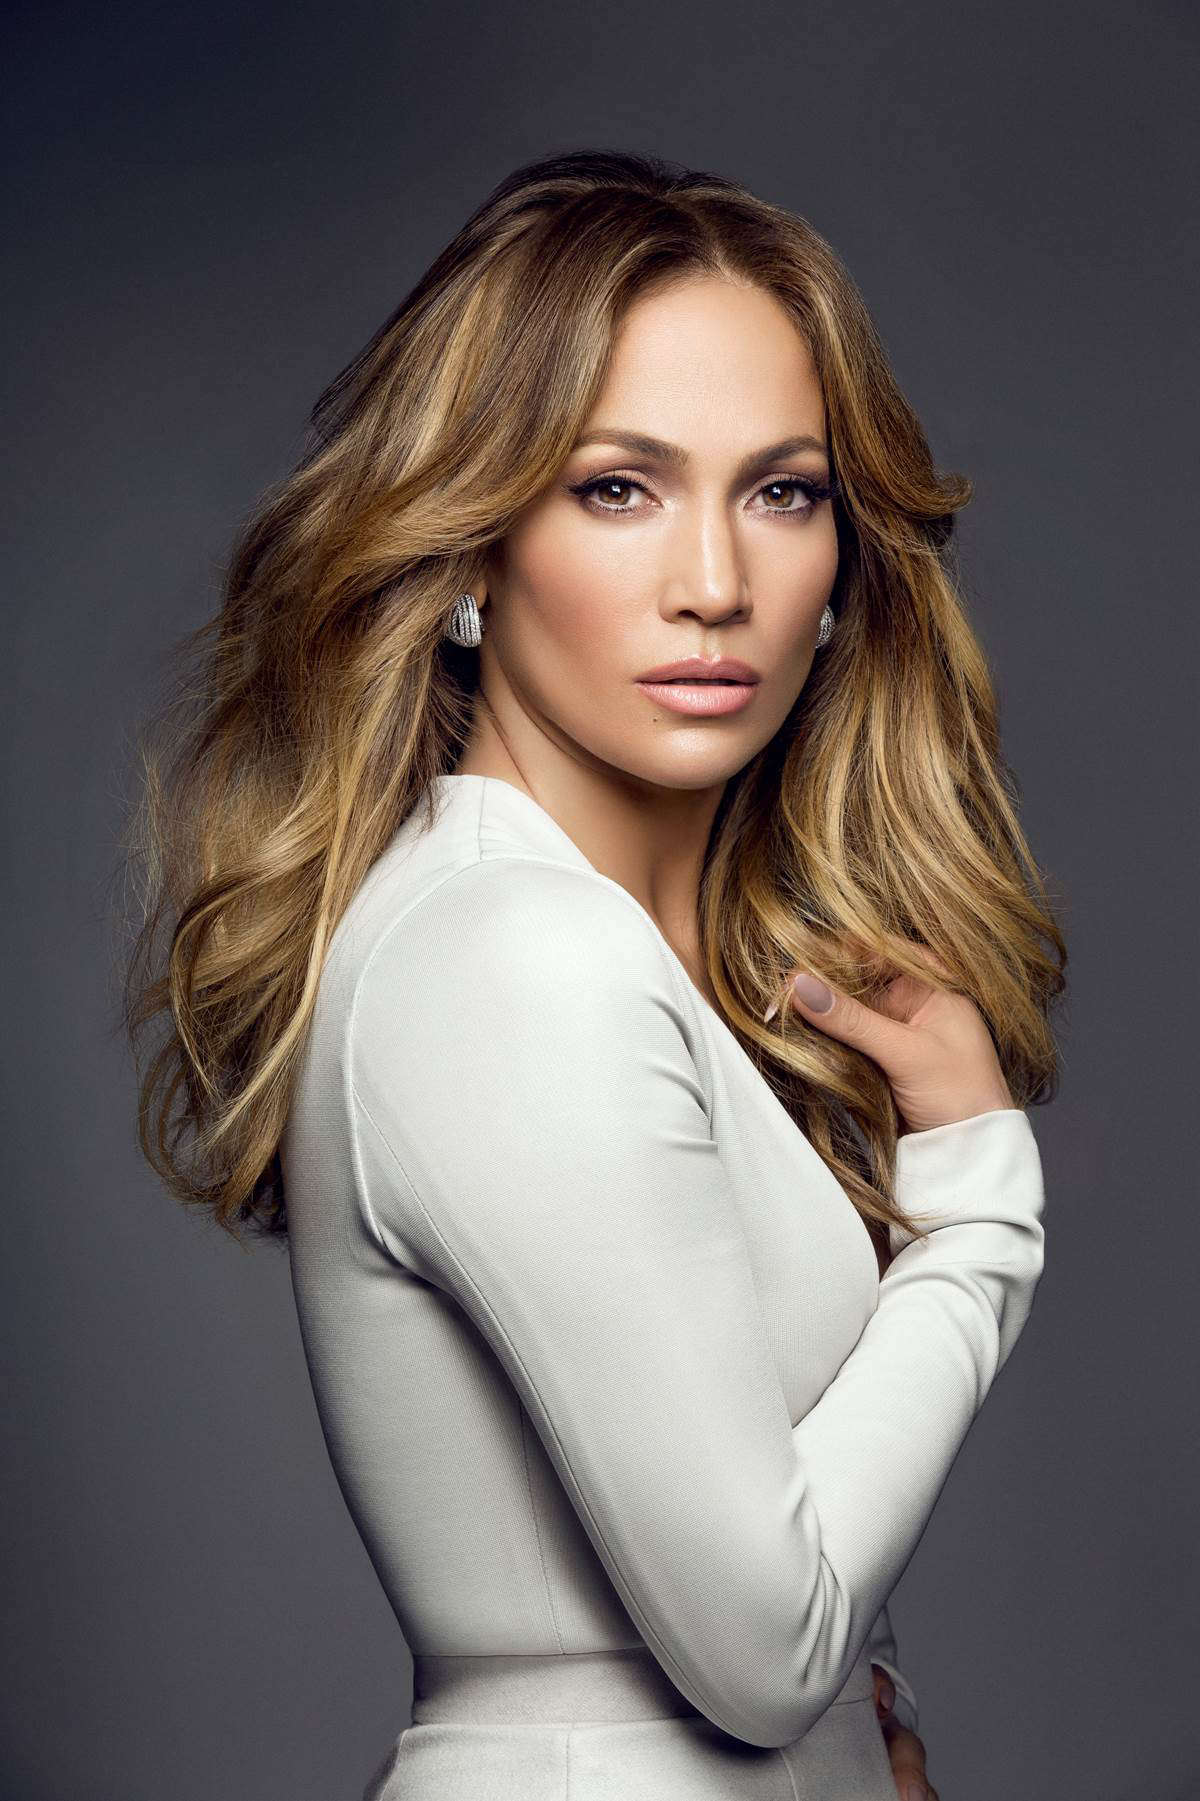 Global Superstar Jennifer Lopez Will Perform And Debut New Music At Telemundo's